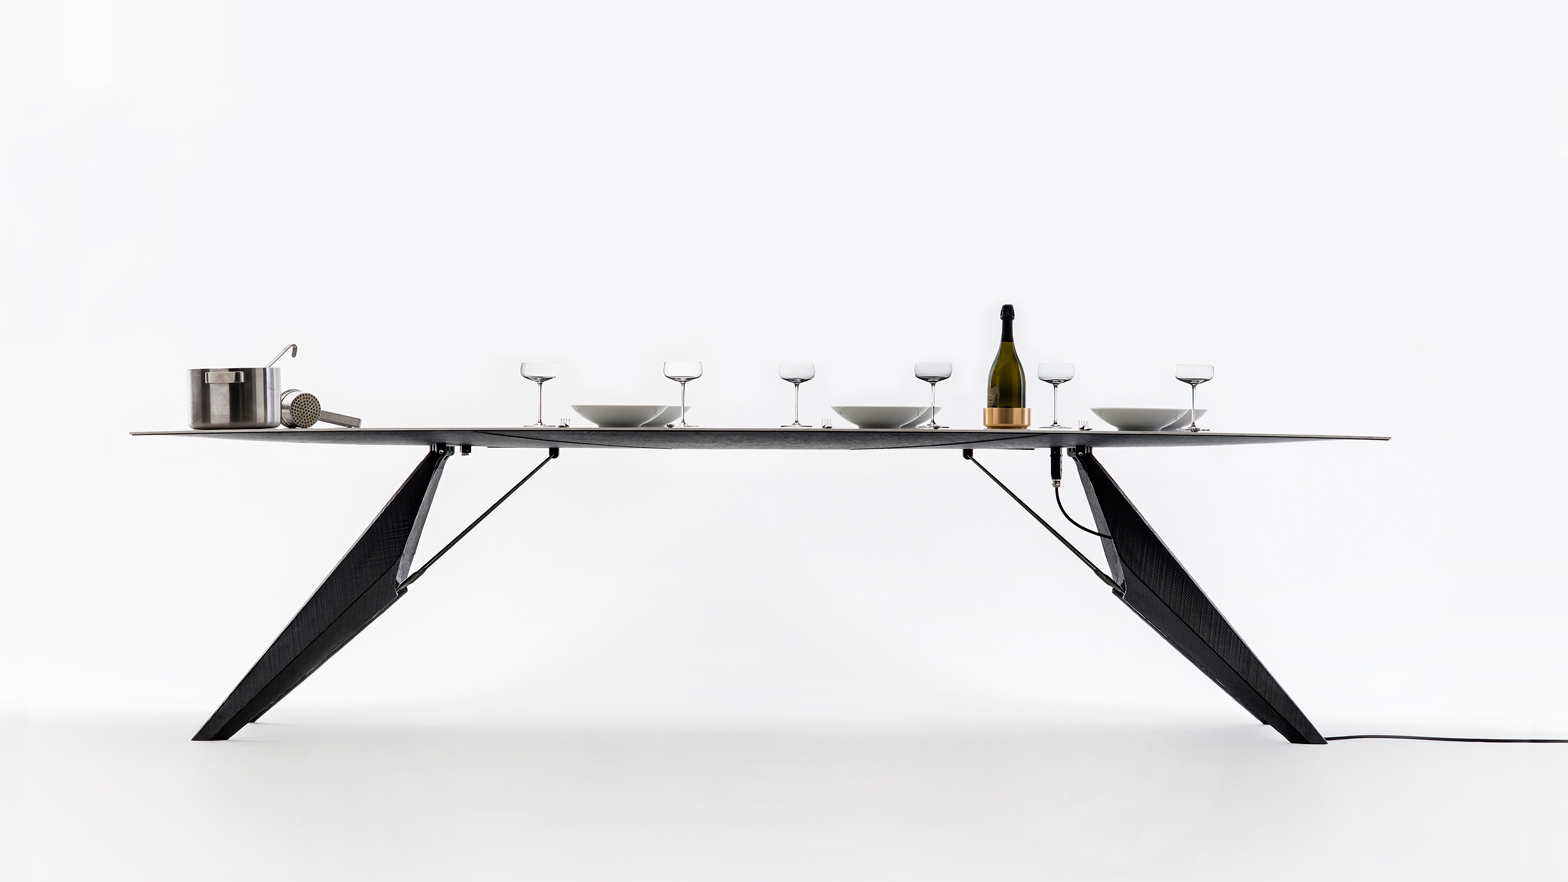 This Futuristic Table Will Keep Food Warm, Cool Down Drinks and Charge Your Phone